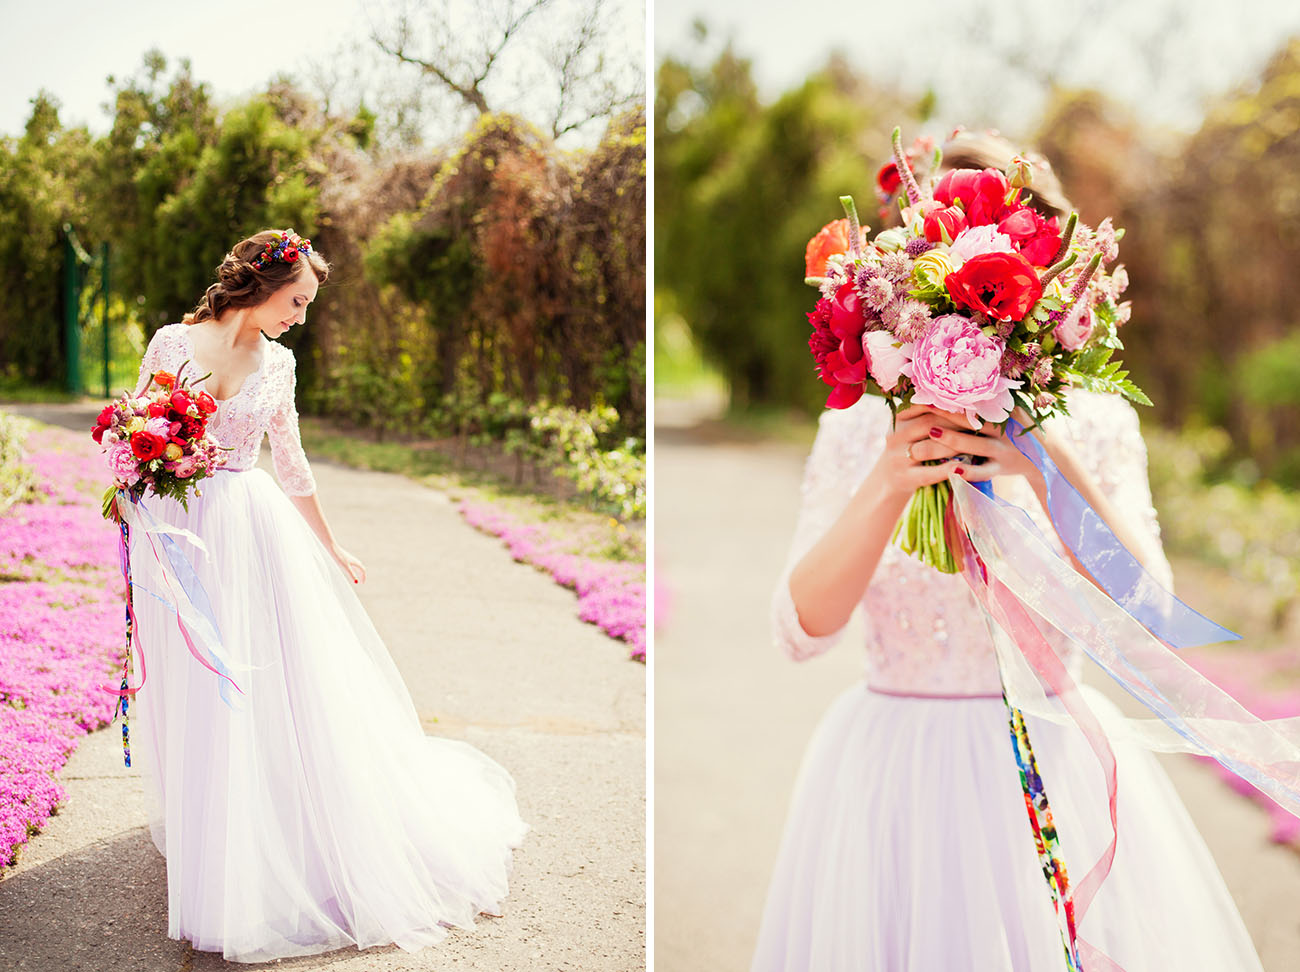 Spring fairytale bride